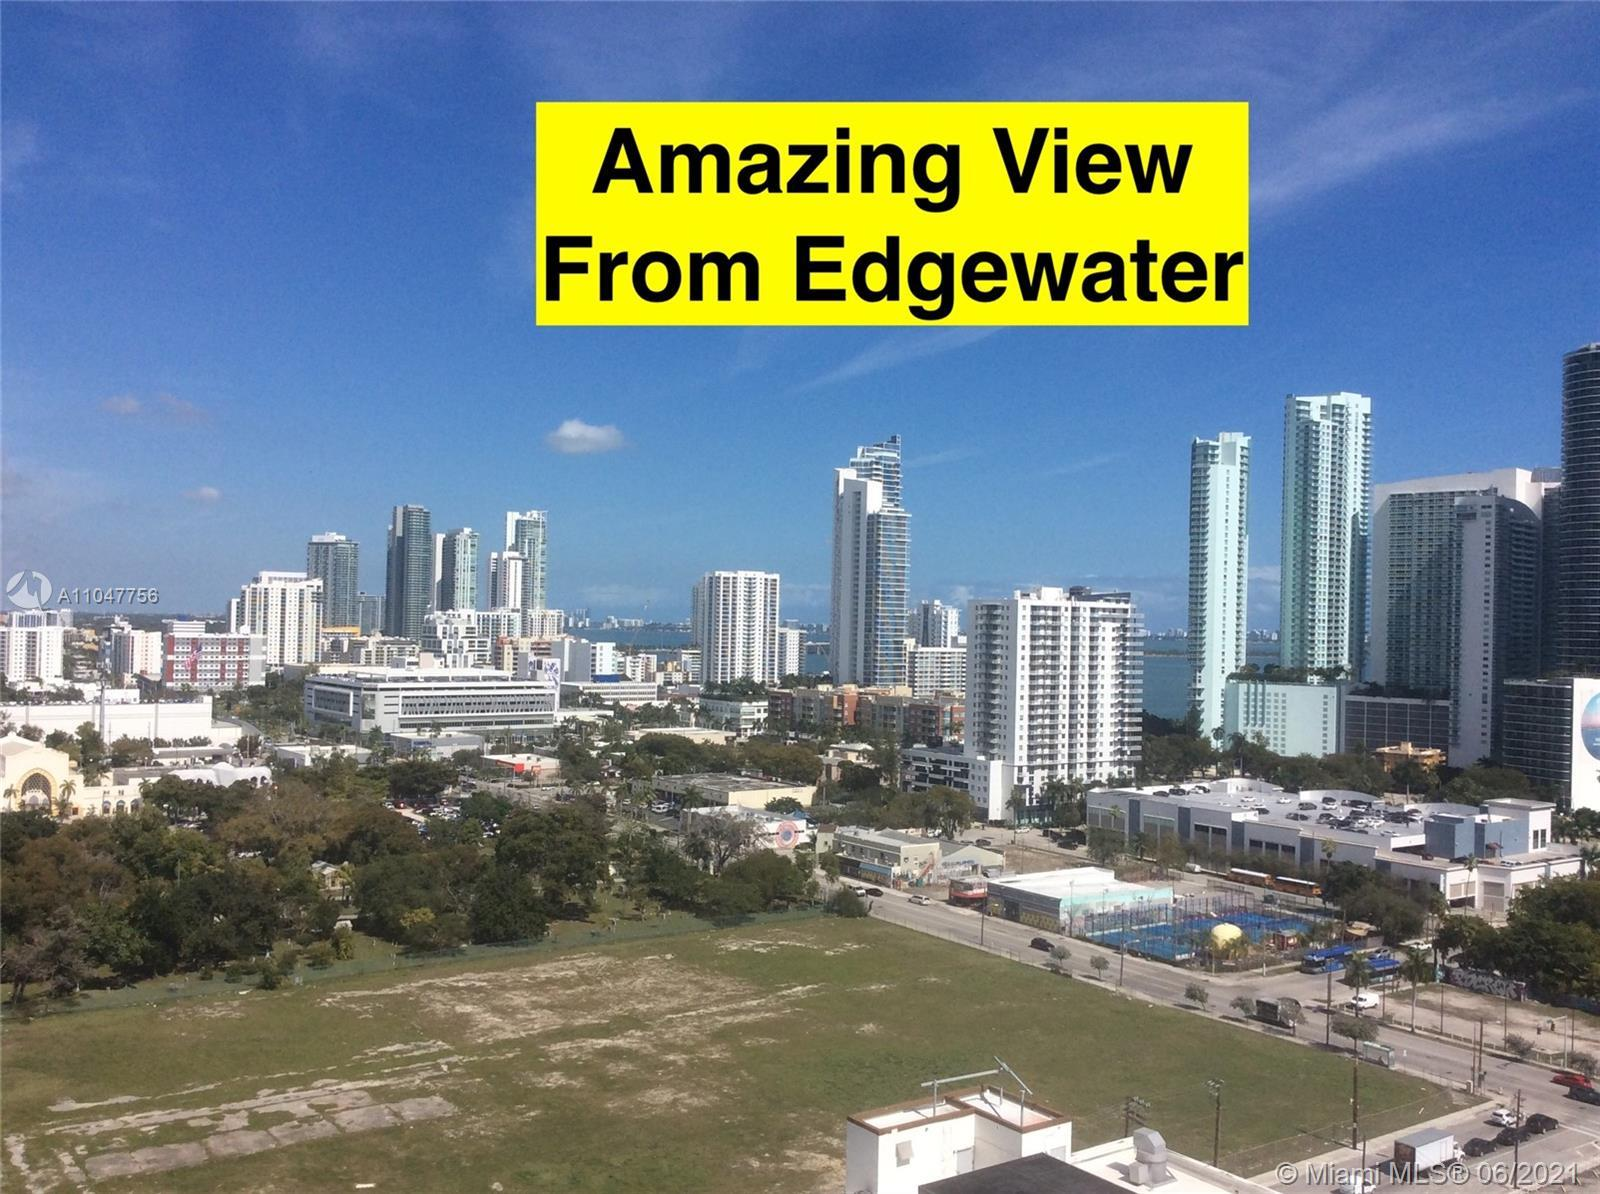 SPACIOUS STUDIO AT  CONDOMINIUM IN DOWNTOWN . WALKING DISTANCE TO WYNWOOD AND MIAMI DESIGN DISTRICT.